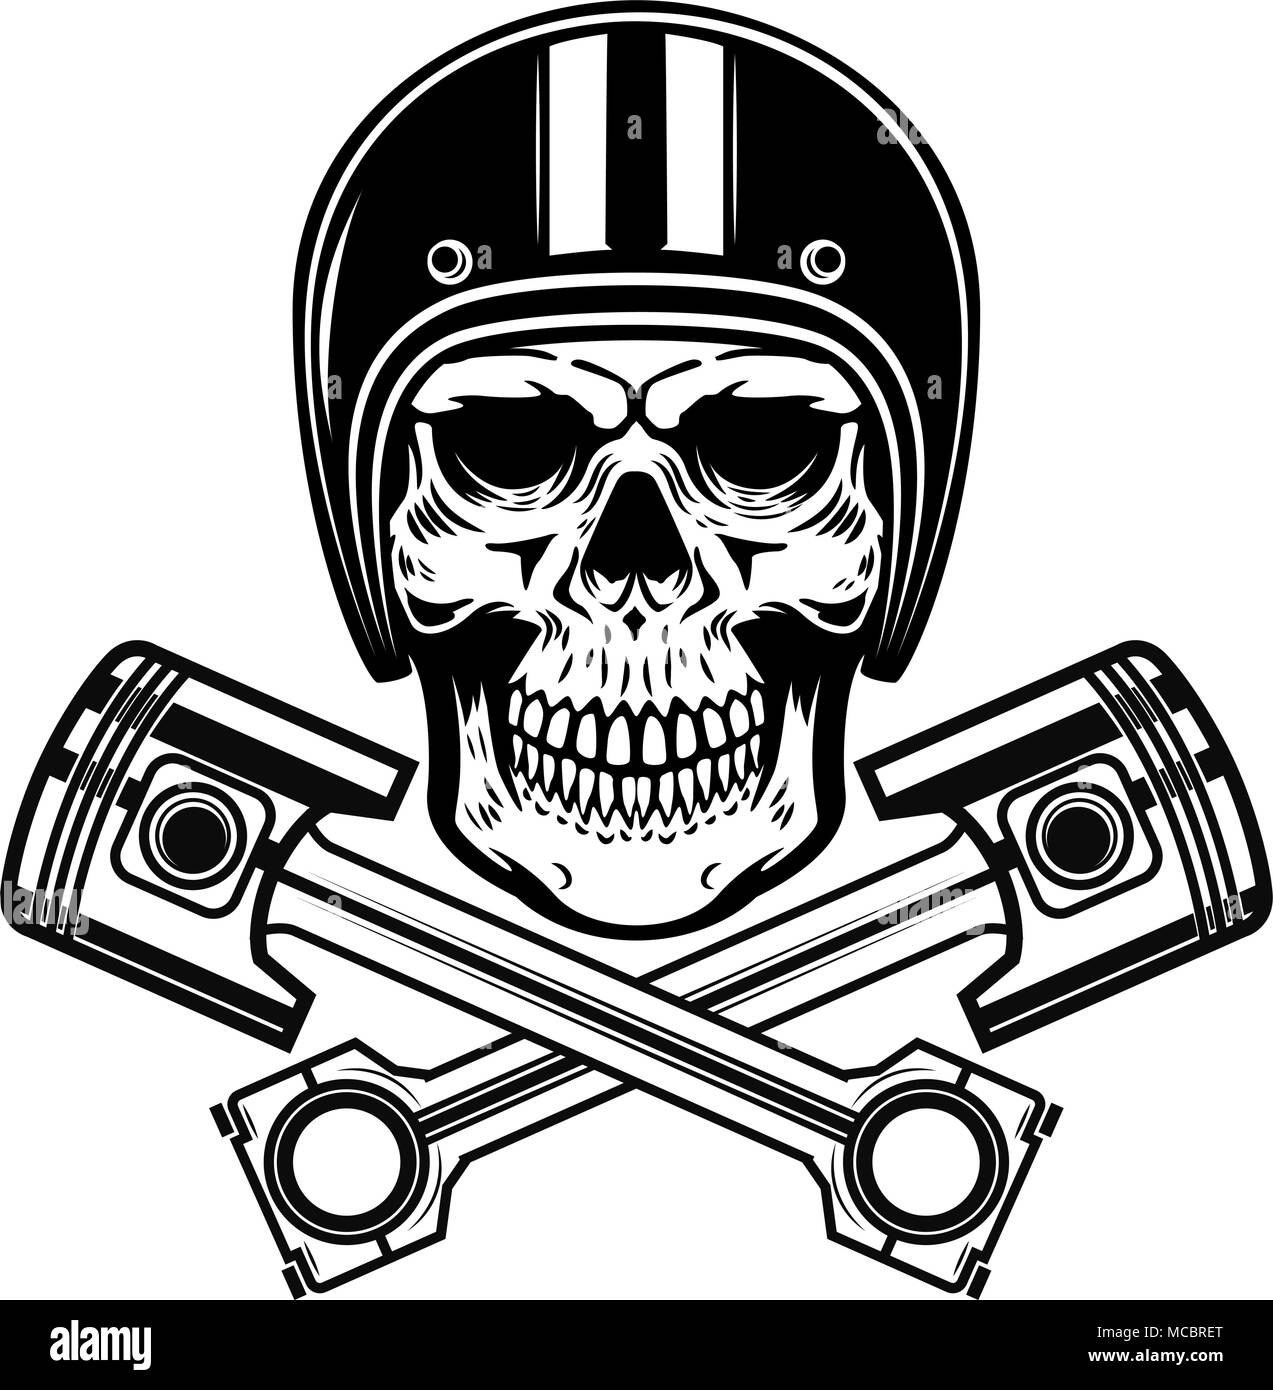 58811bc1c3f78 Skull in racer helmet with crossed pistons. Design element for logo ...